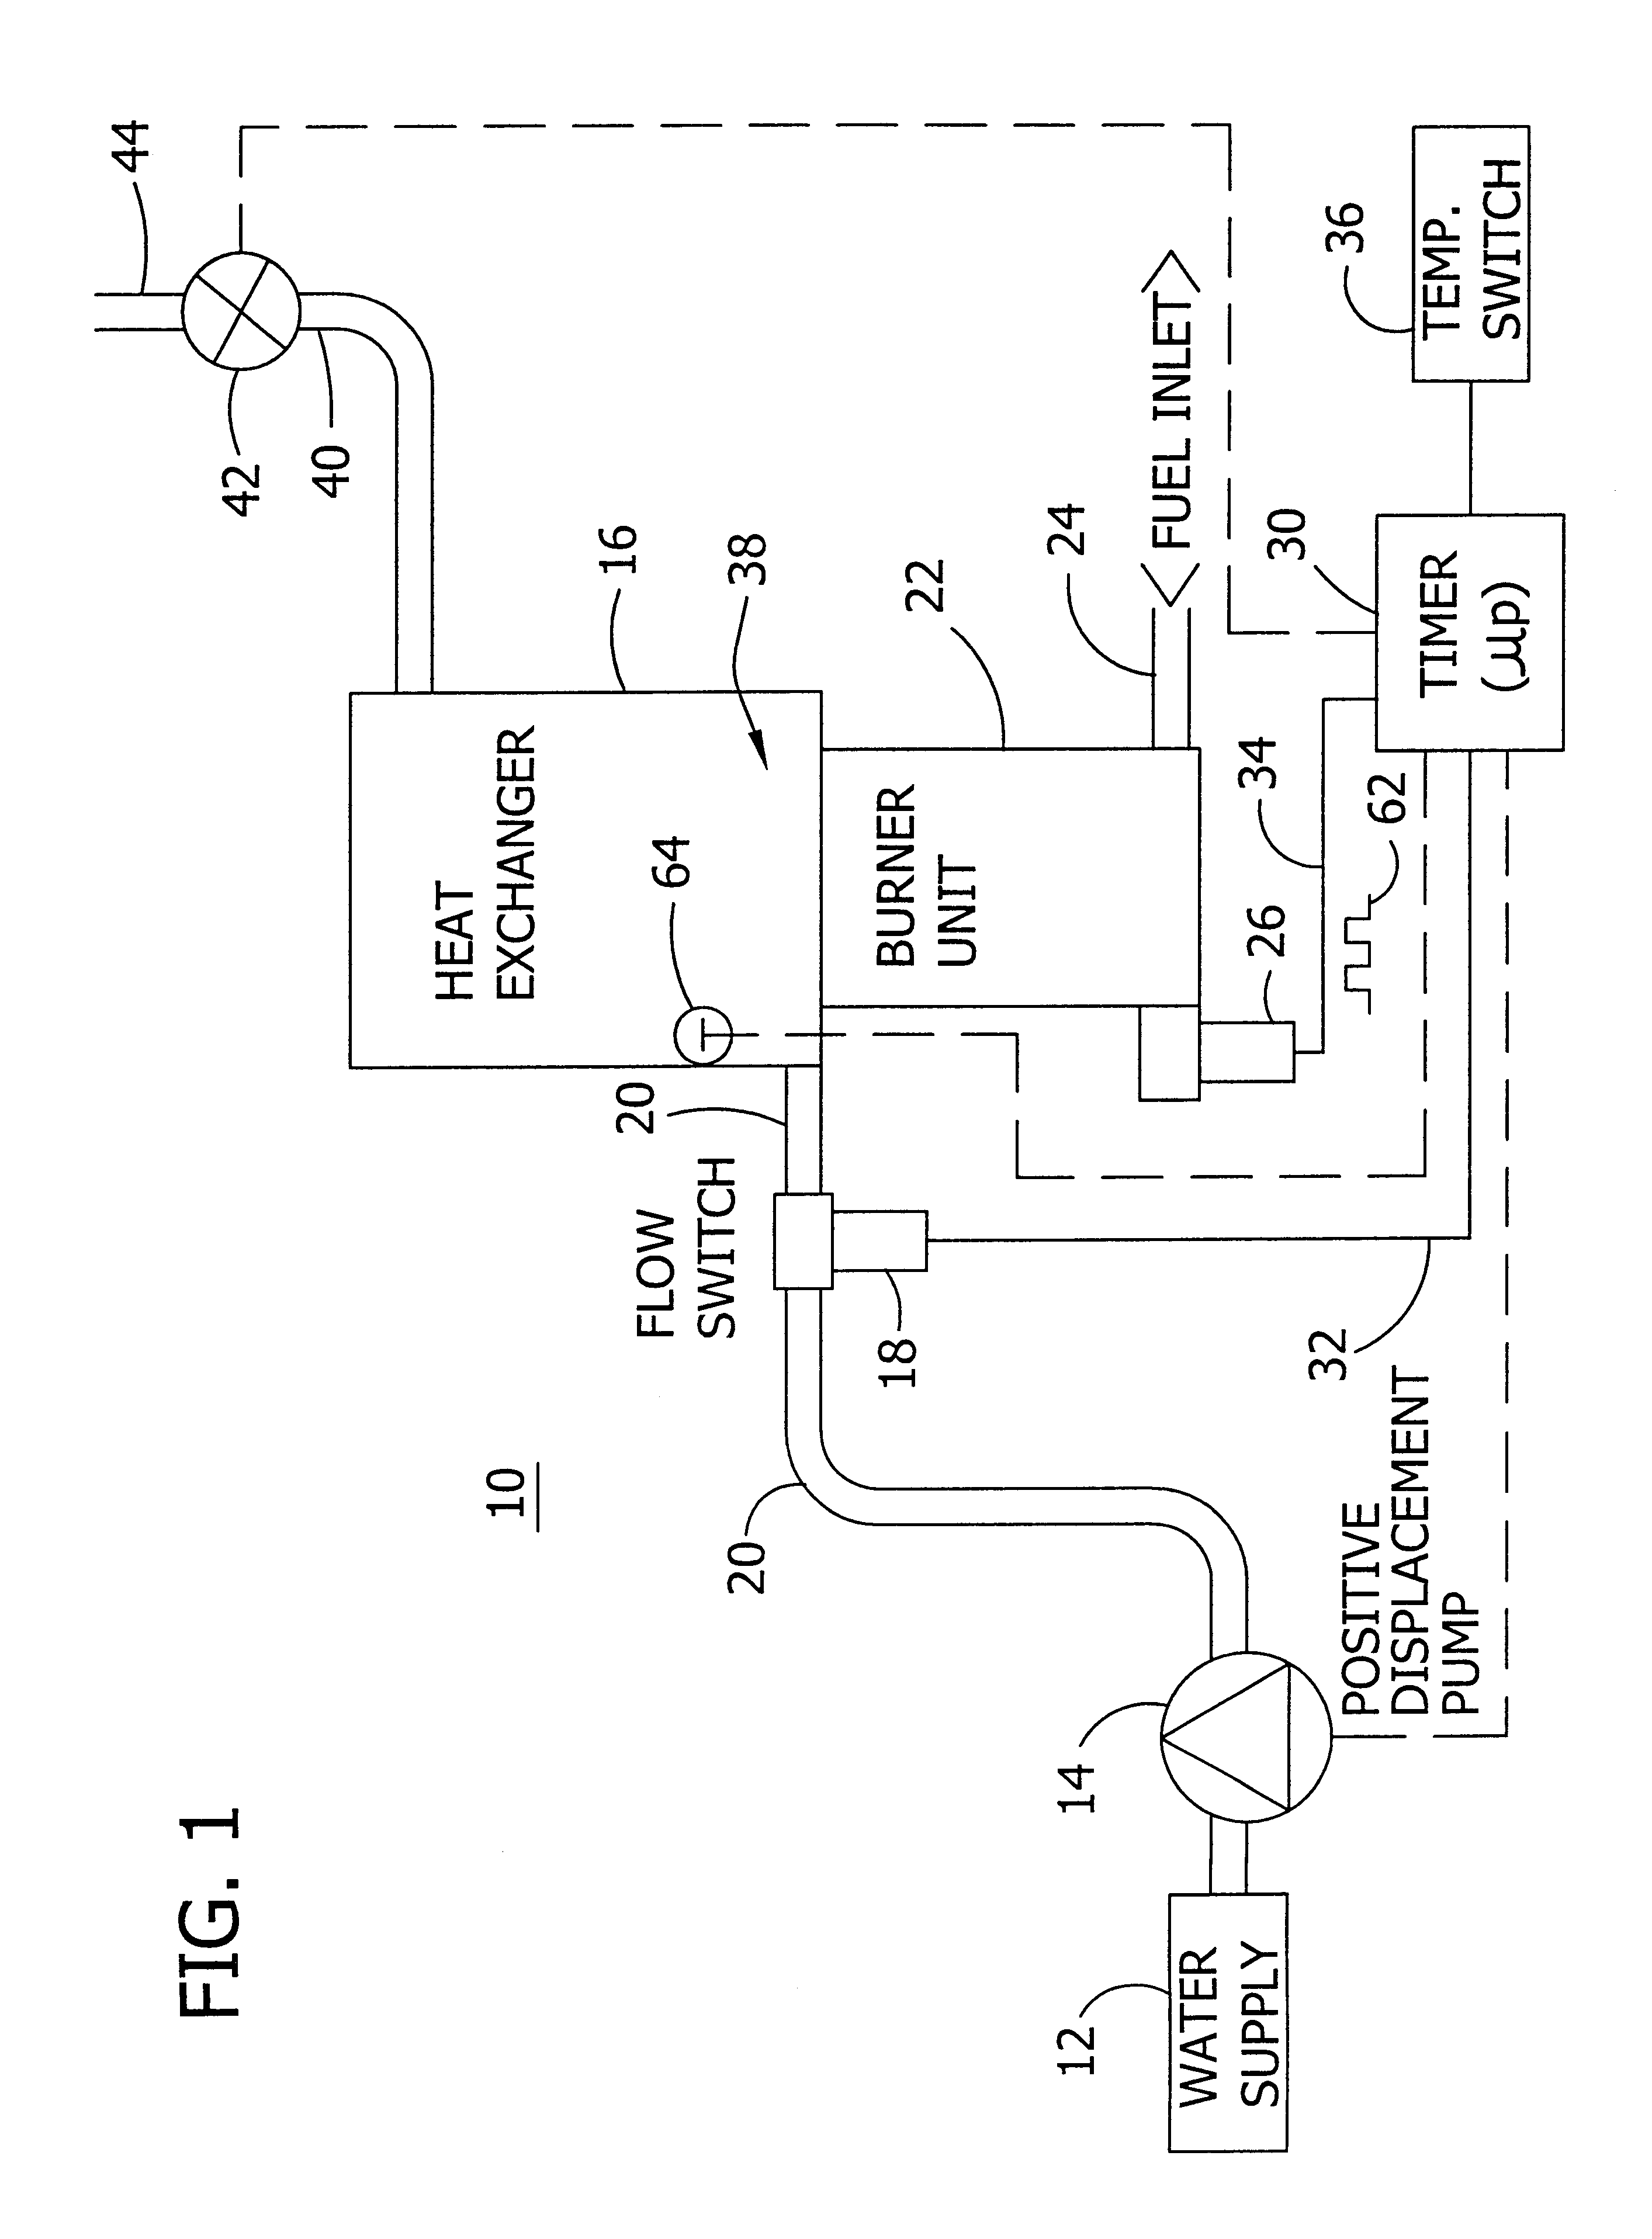 Boiler Steam Pressure Washer Wiring Diagram Diagrams Residential Hot Cleaner Ice Machine Thermostat